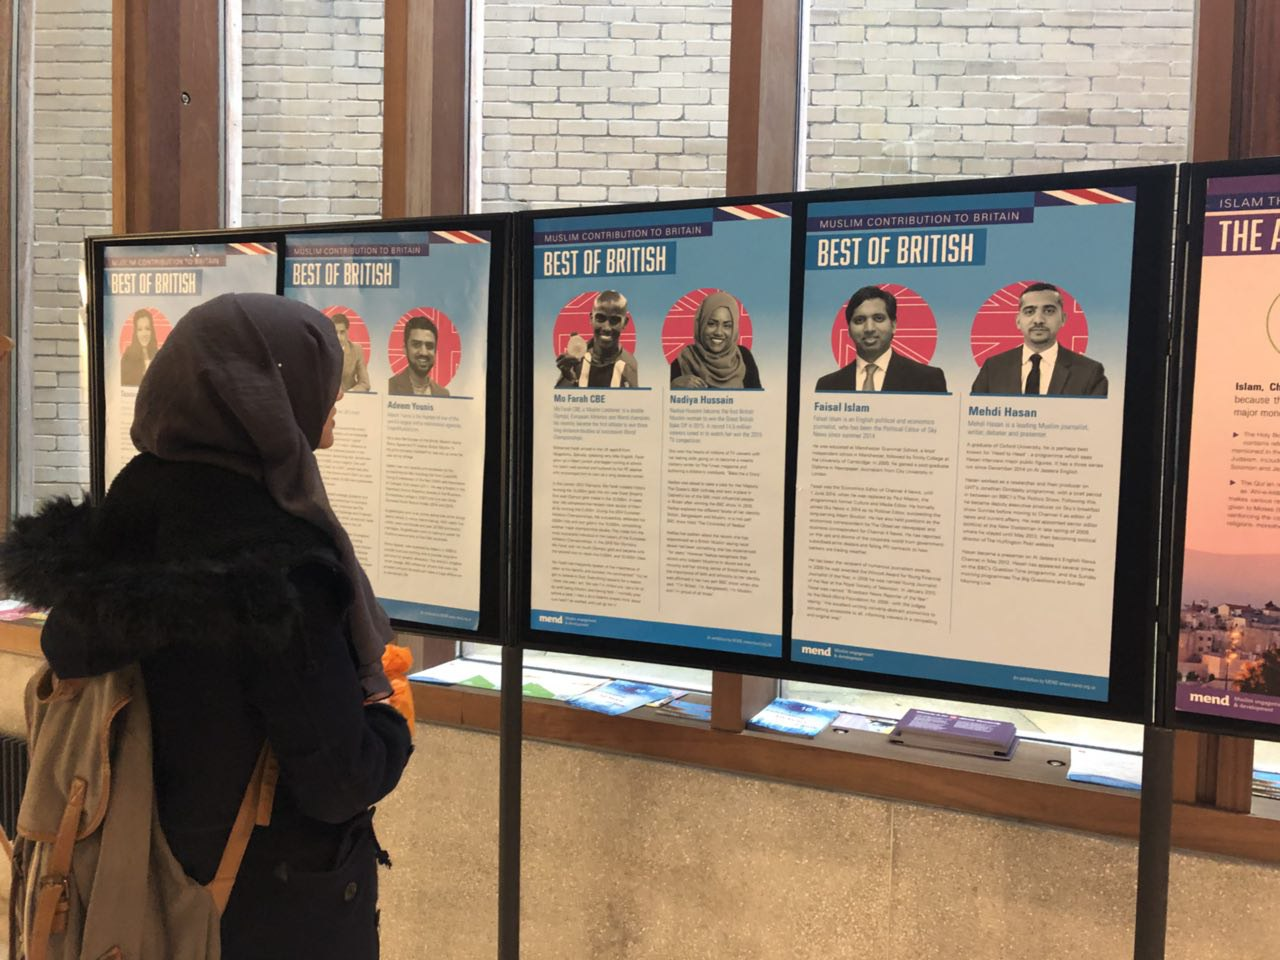 Discover Islam Week Exhibition at LSE